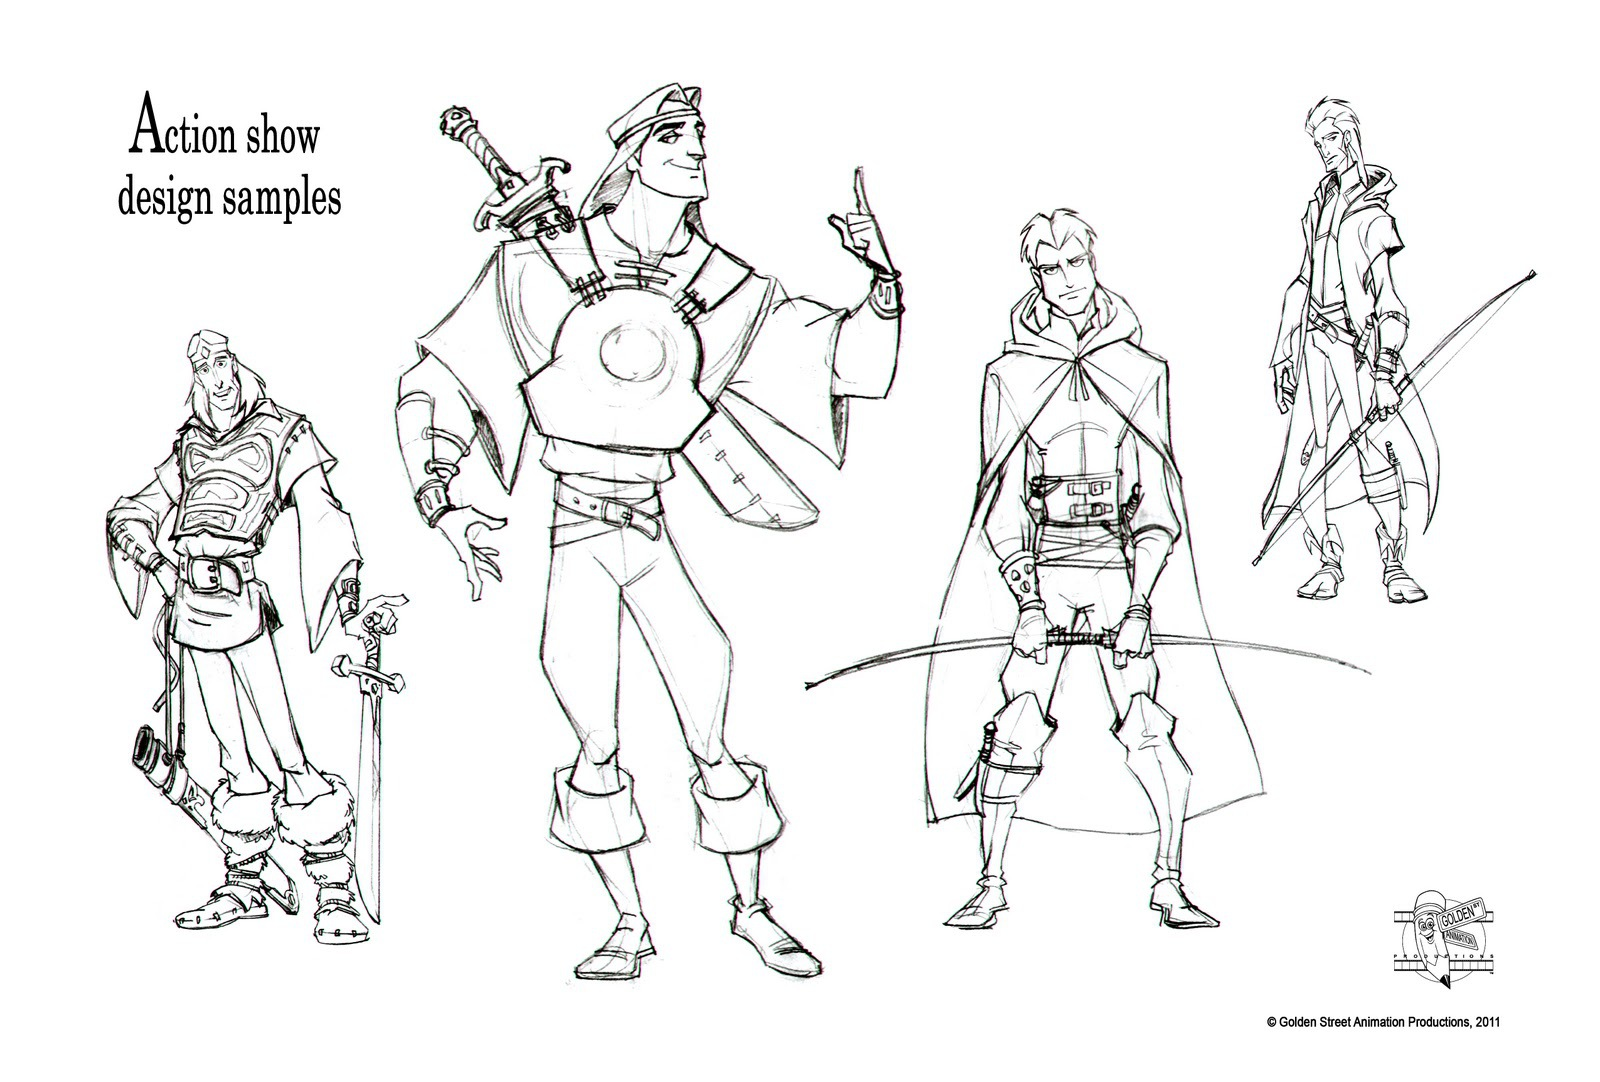 Action show character designs by GSA